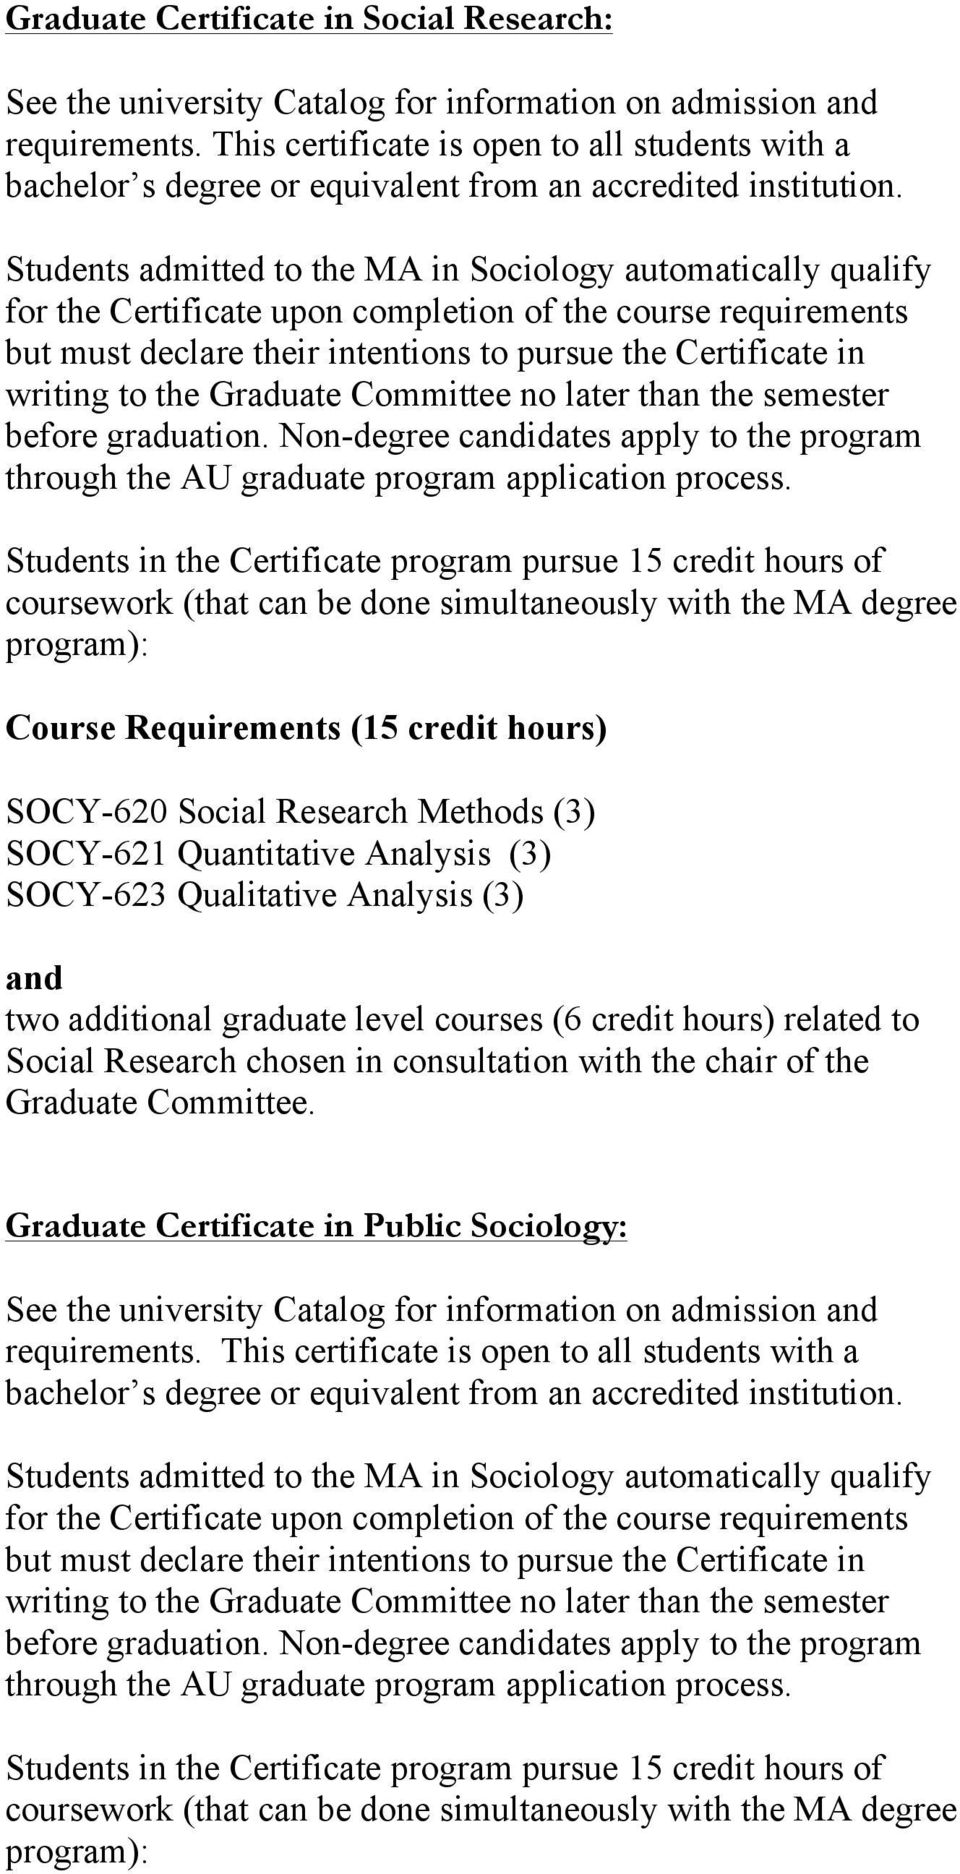 Students admitted to the MA in Sociology automatically qualify for the Certificate upon completion of the course requirements but must declare their intentions to pursue the Certificate in writing to